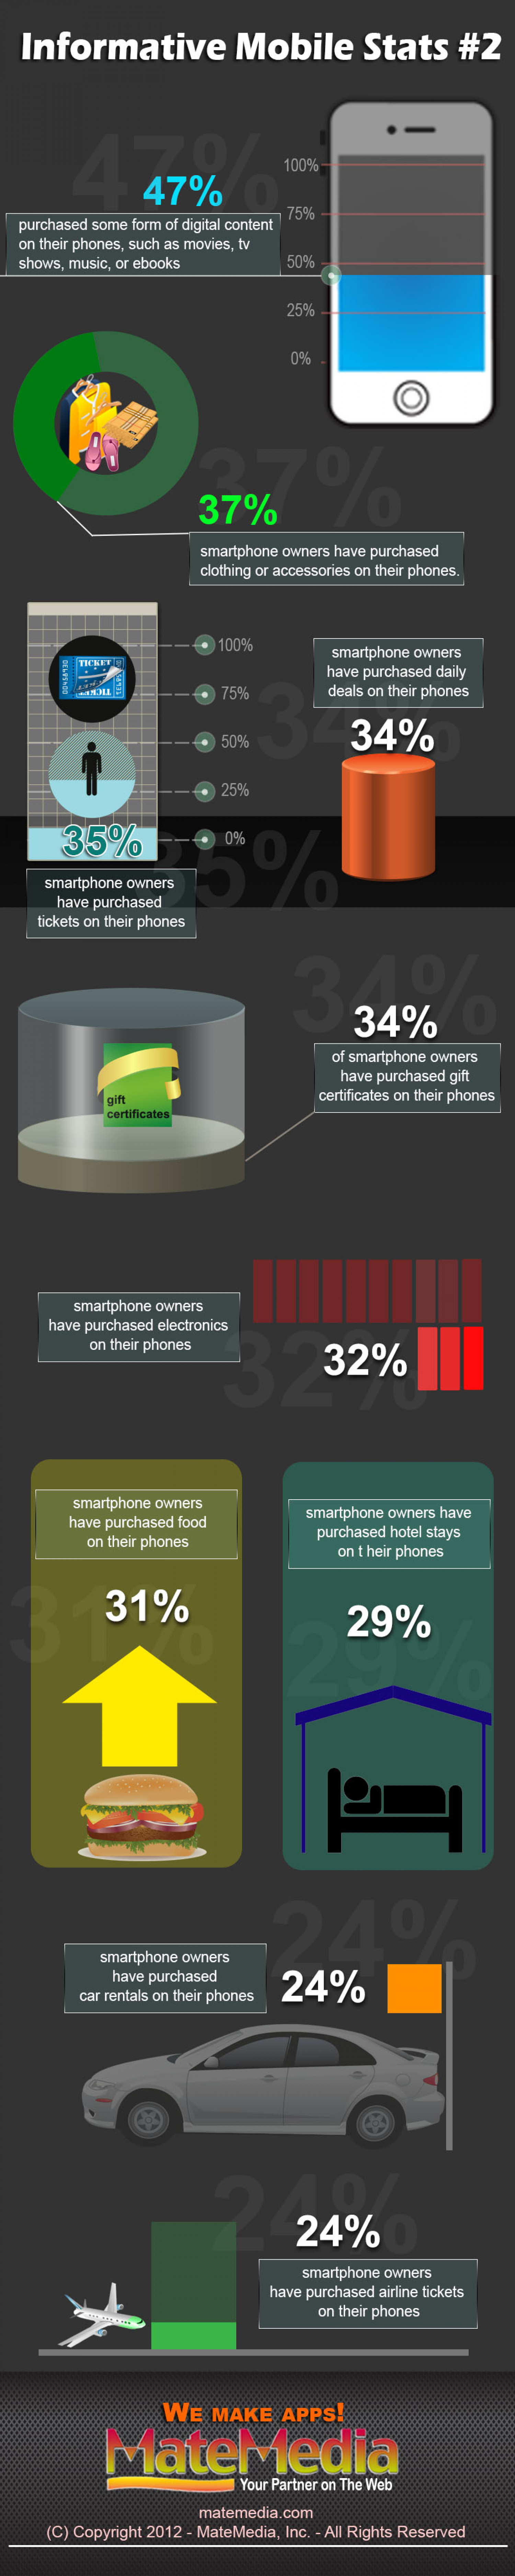 Informative Mobile Stats #2 Infographic